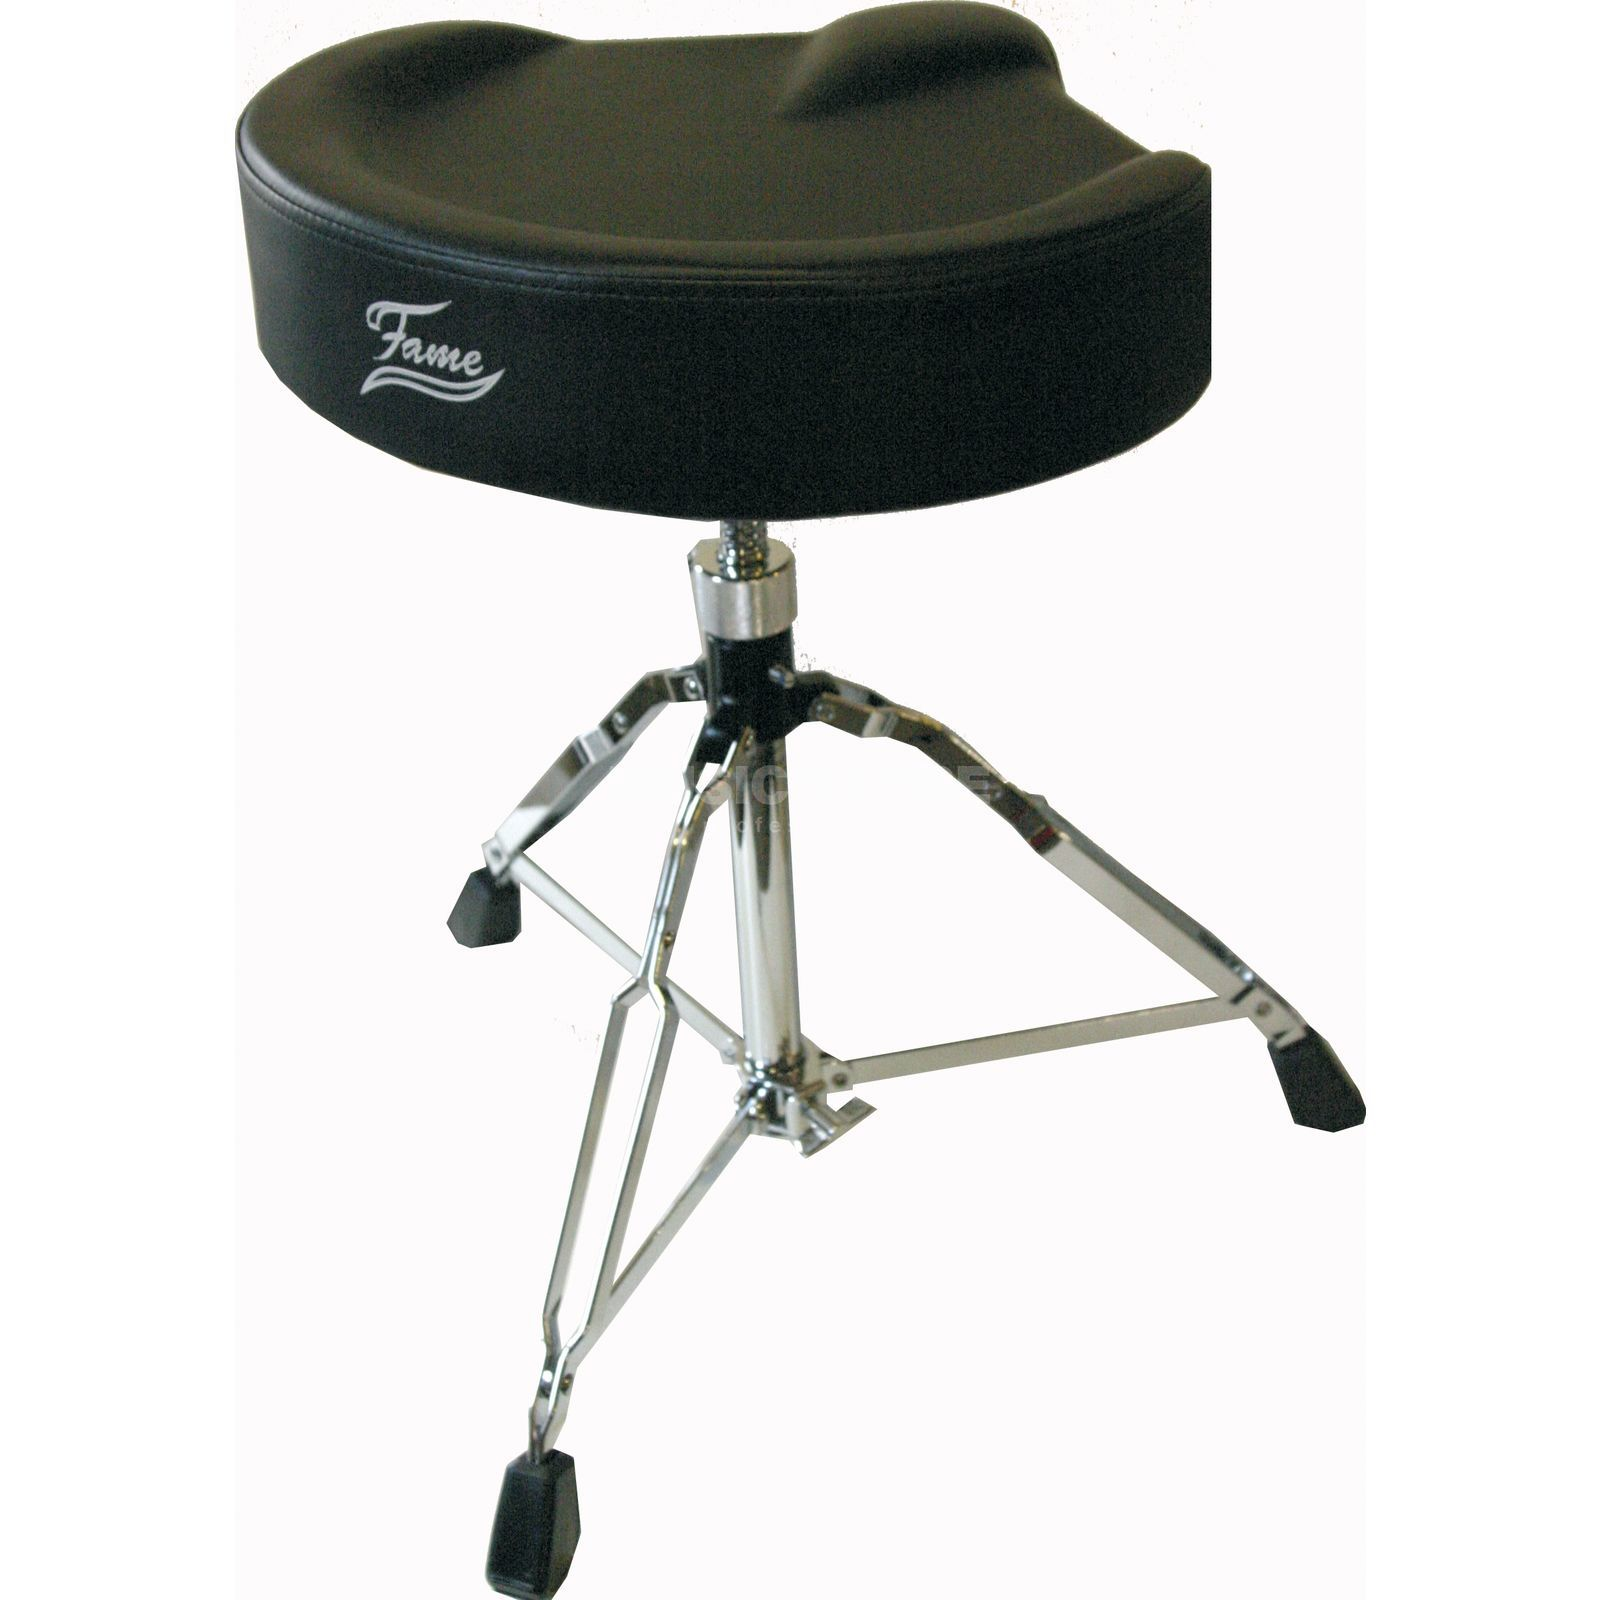 Fame Drum Throne D9002 Product Image